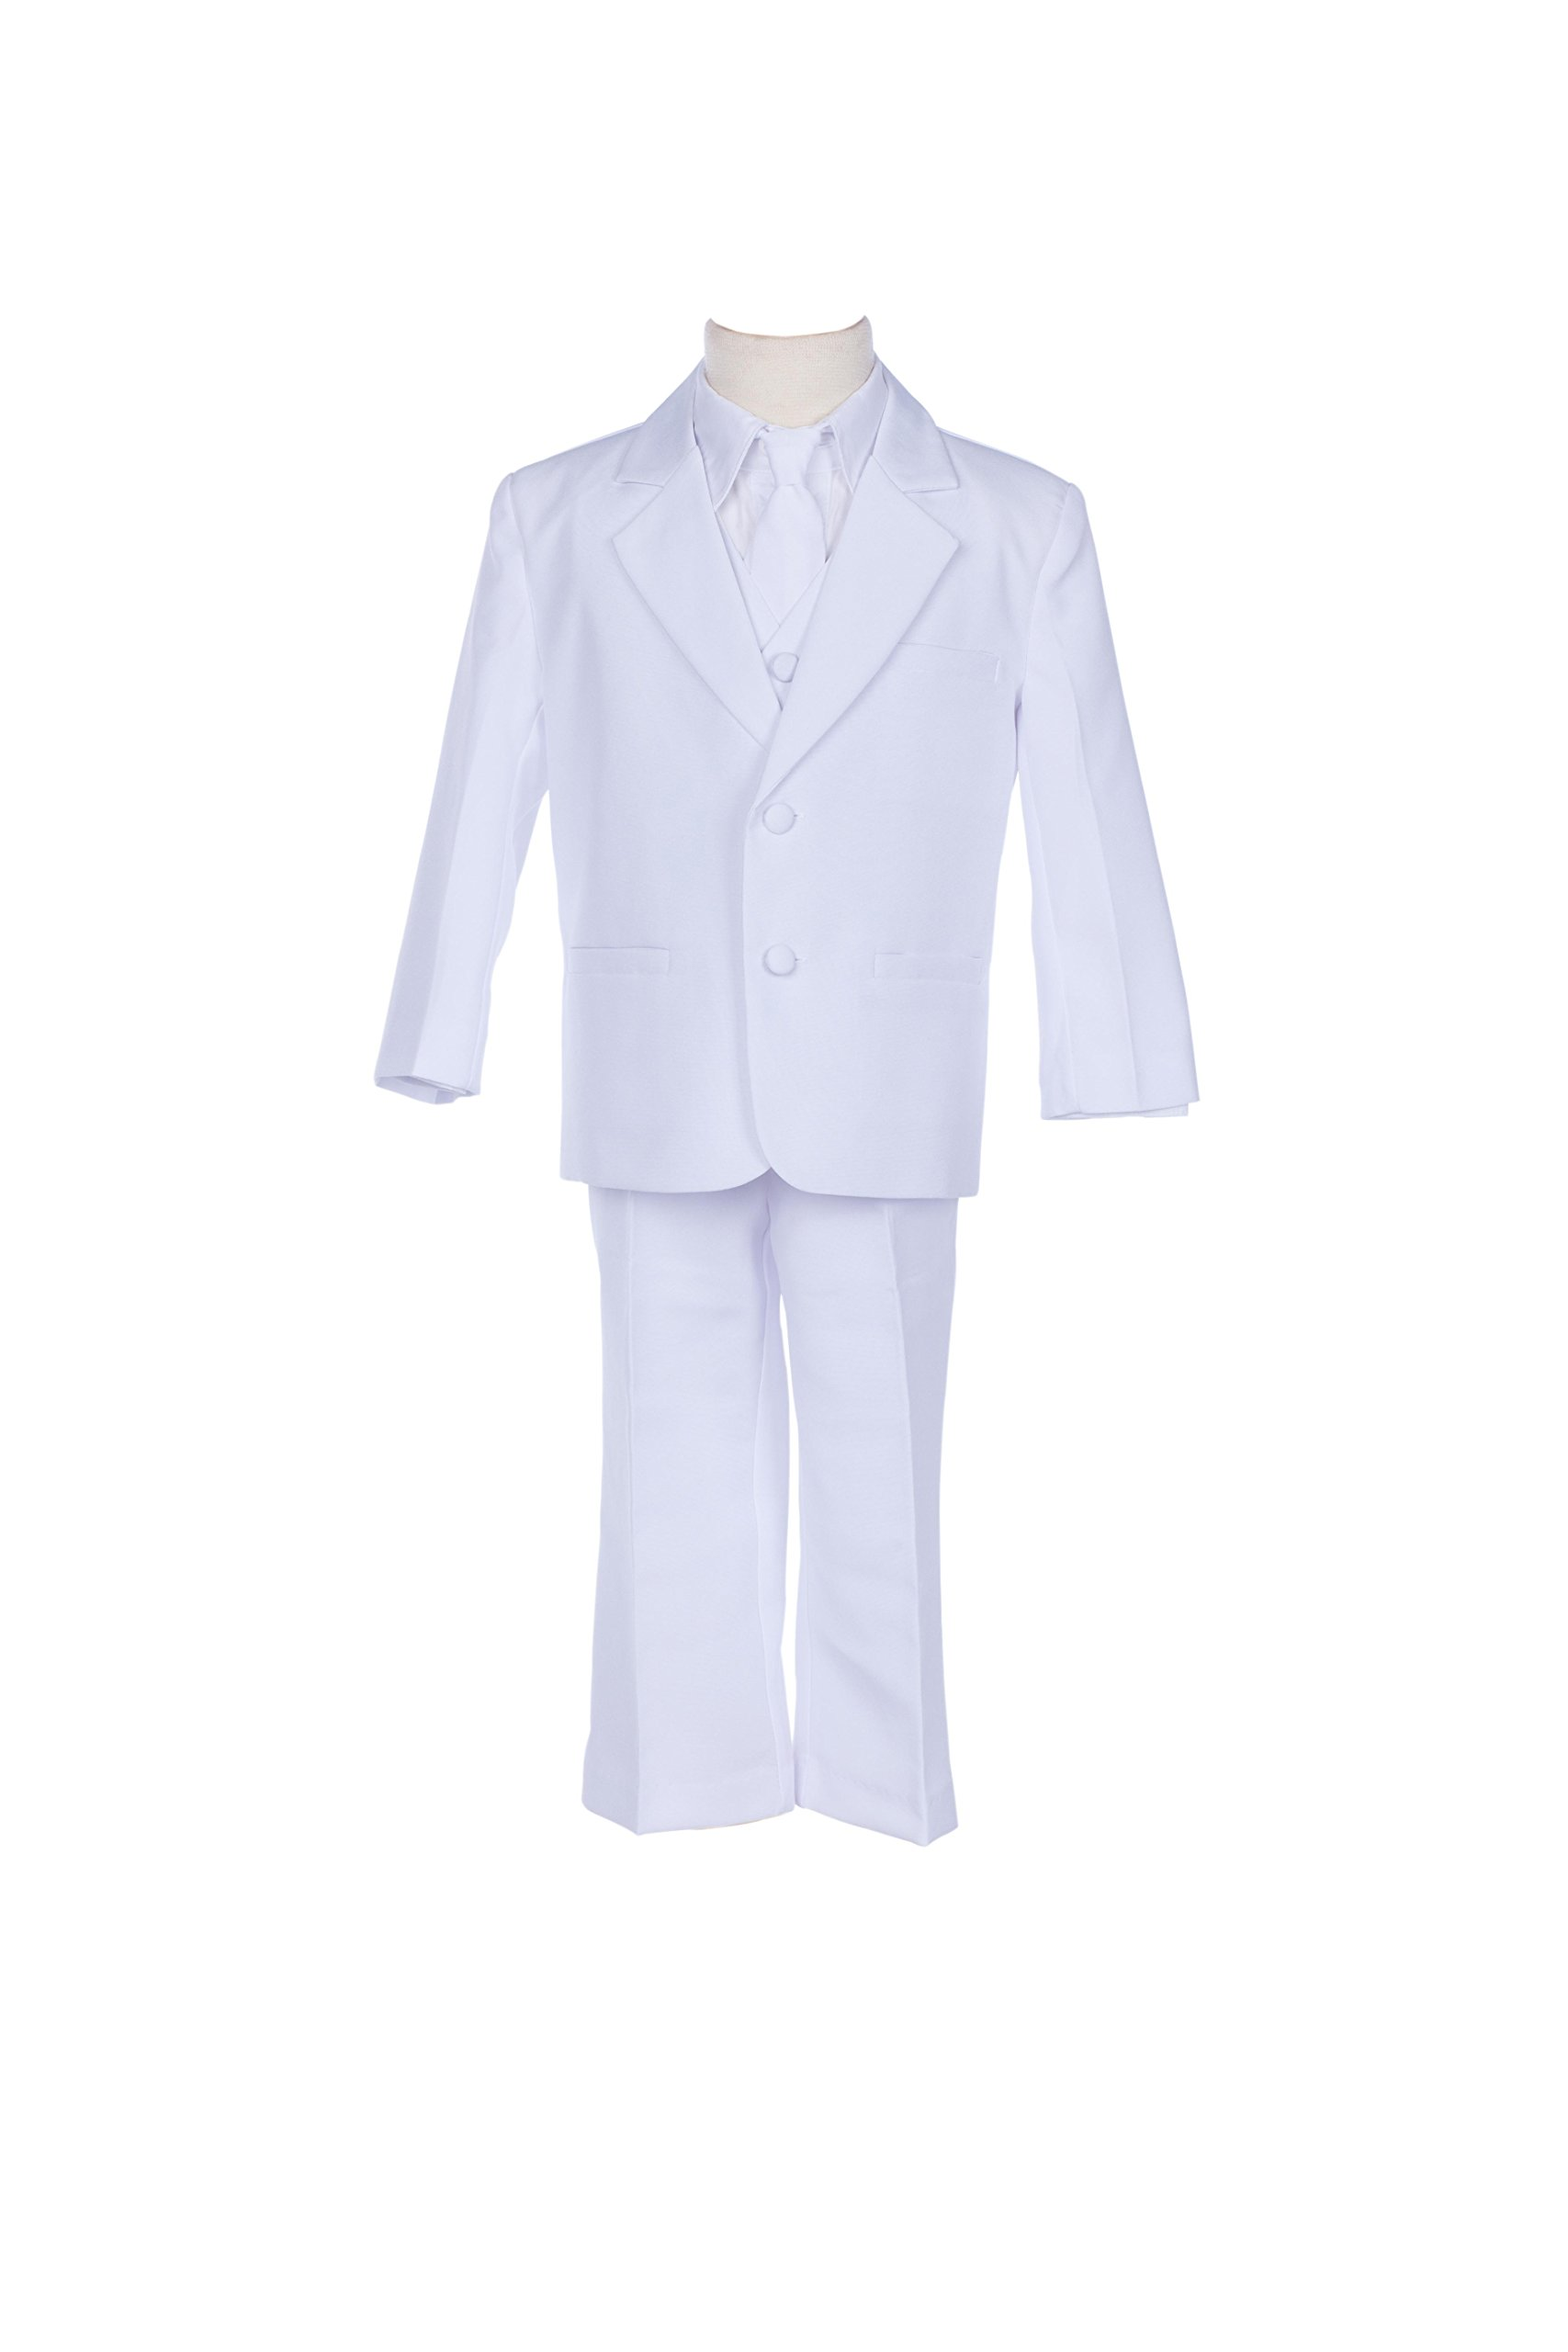 White Boy Teen Tuxedo Suit Formal 5-Piece Set For Wedding Pageant Tie 2